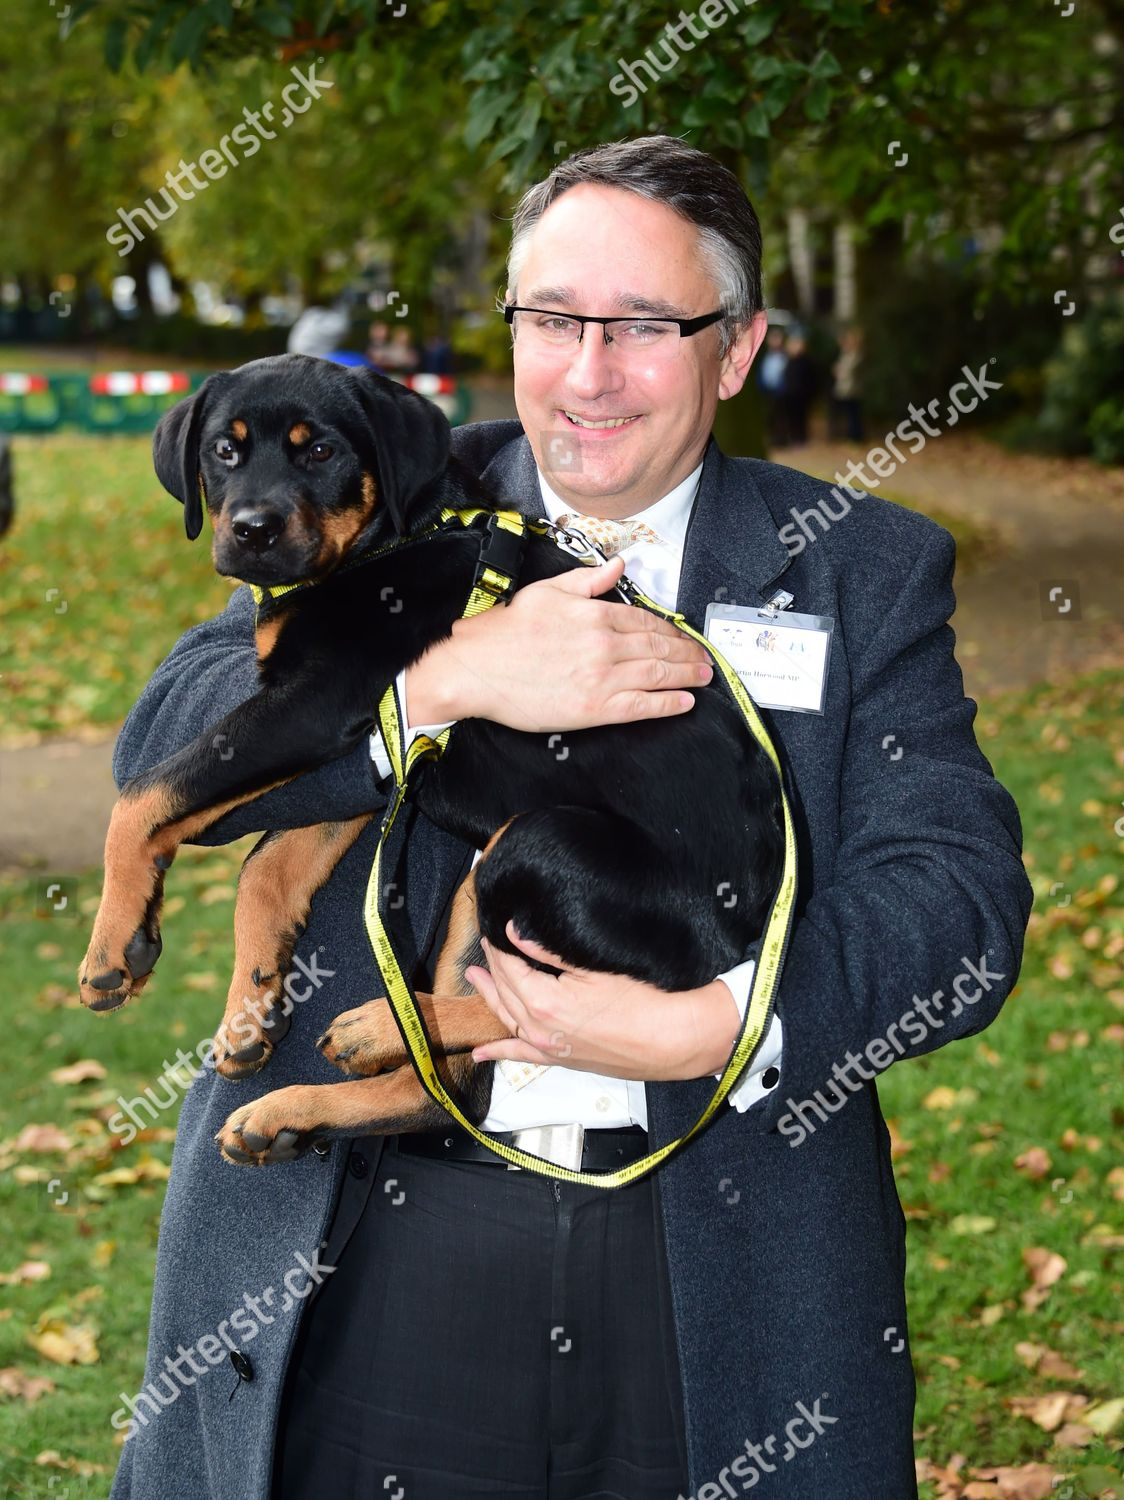 Martin Horwood Rottweiler rescue puppy Editorial Stock Photo - Stock